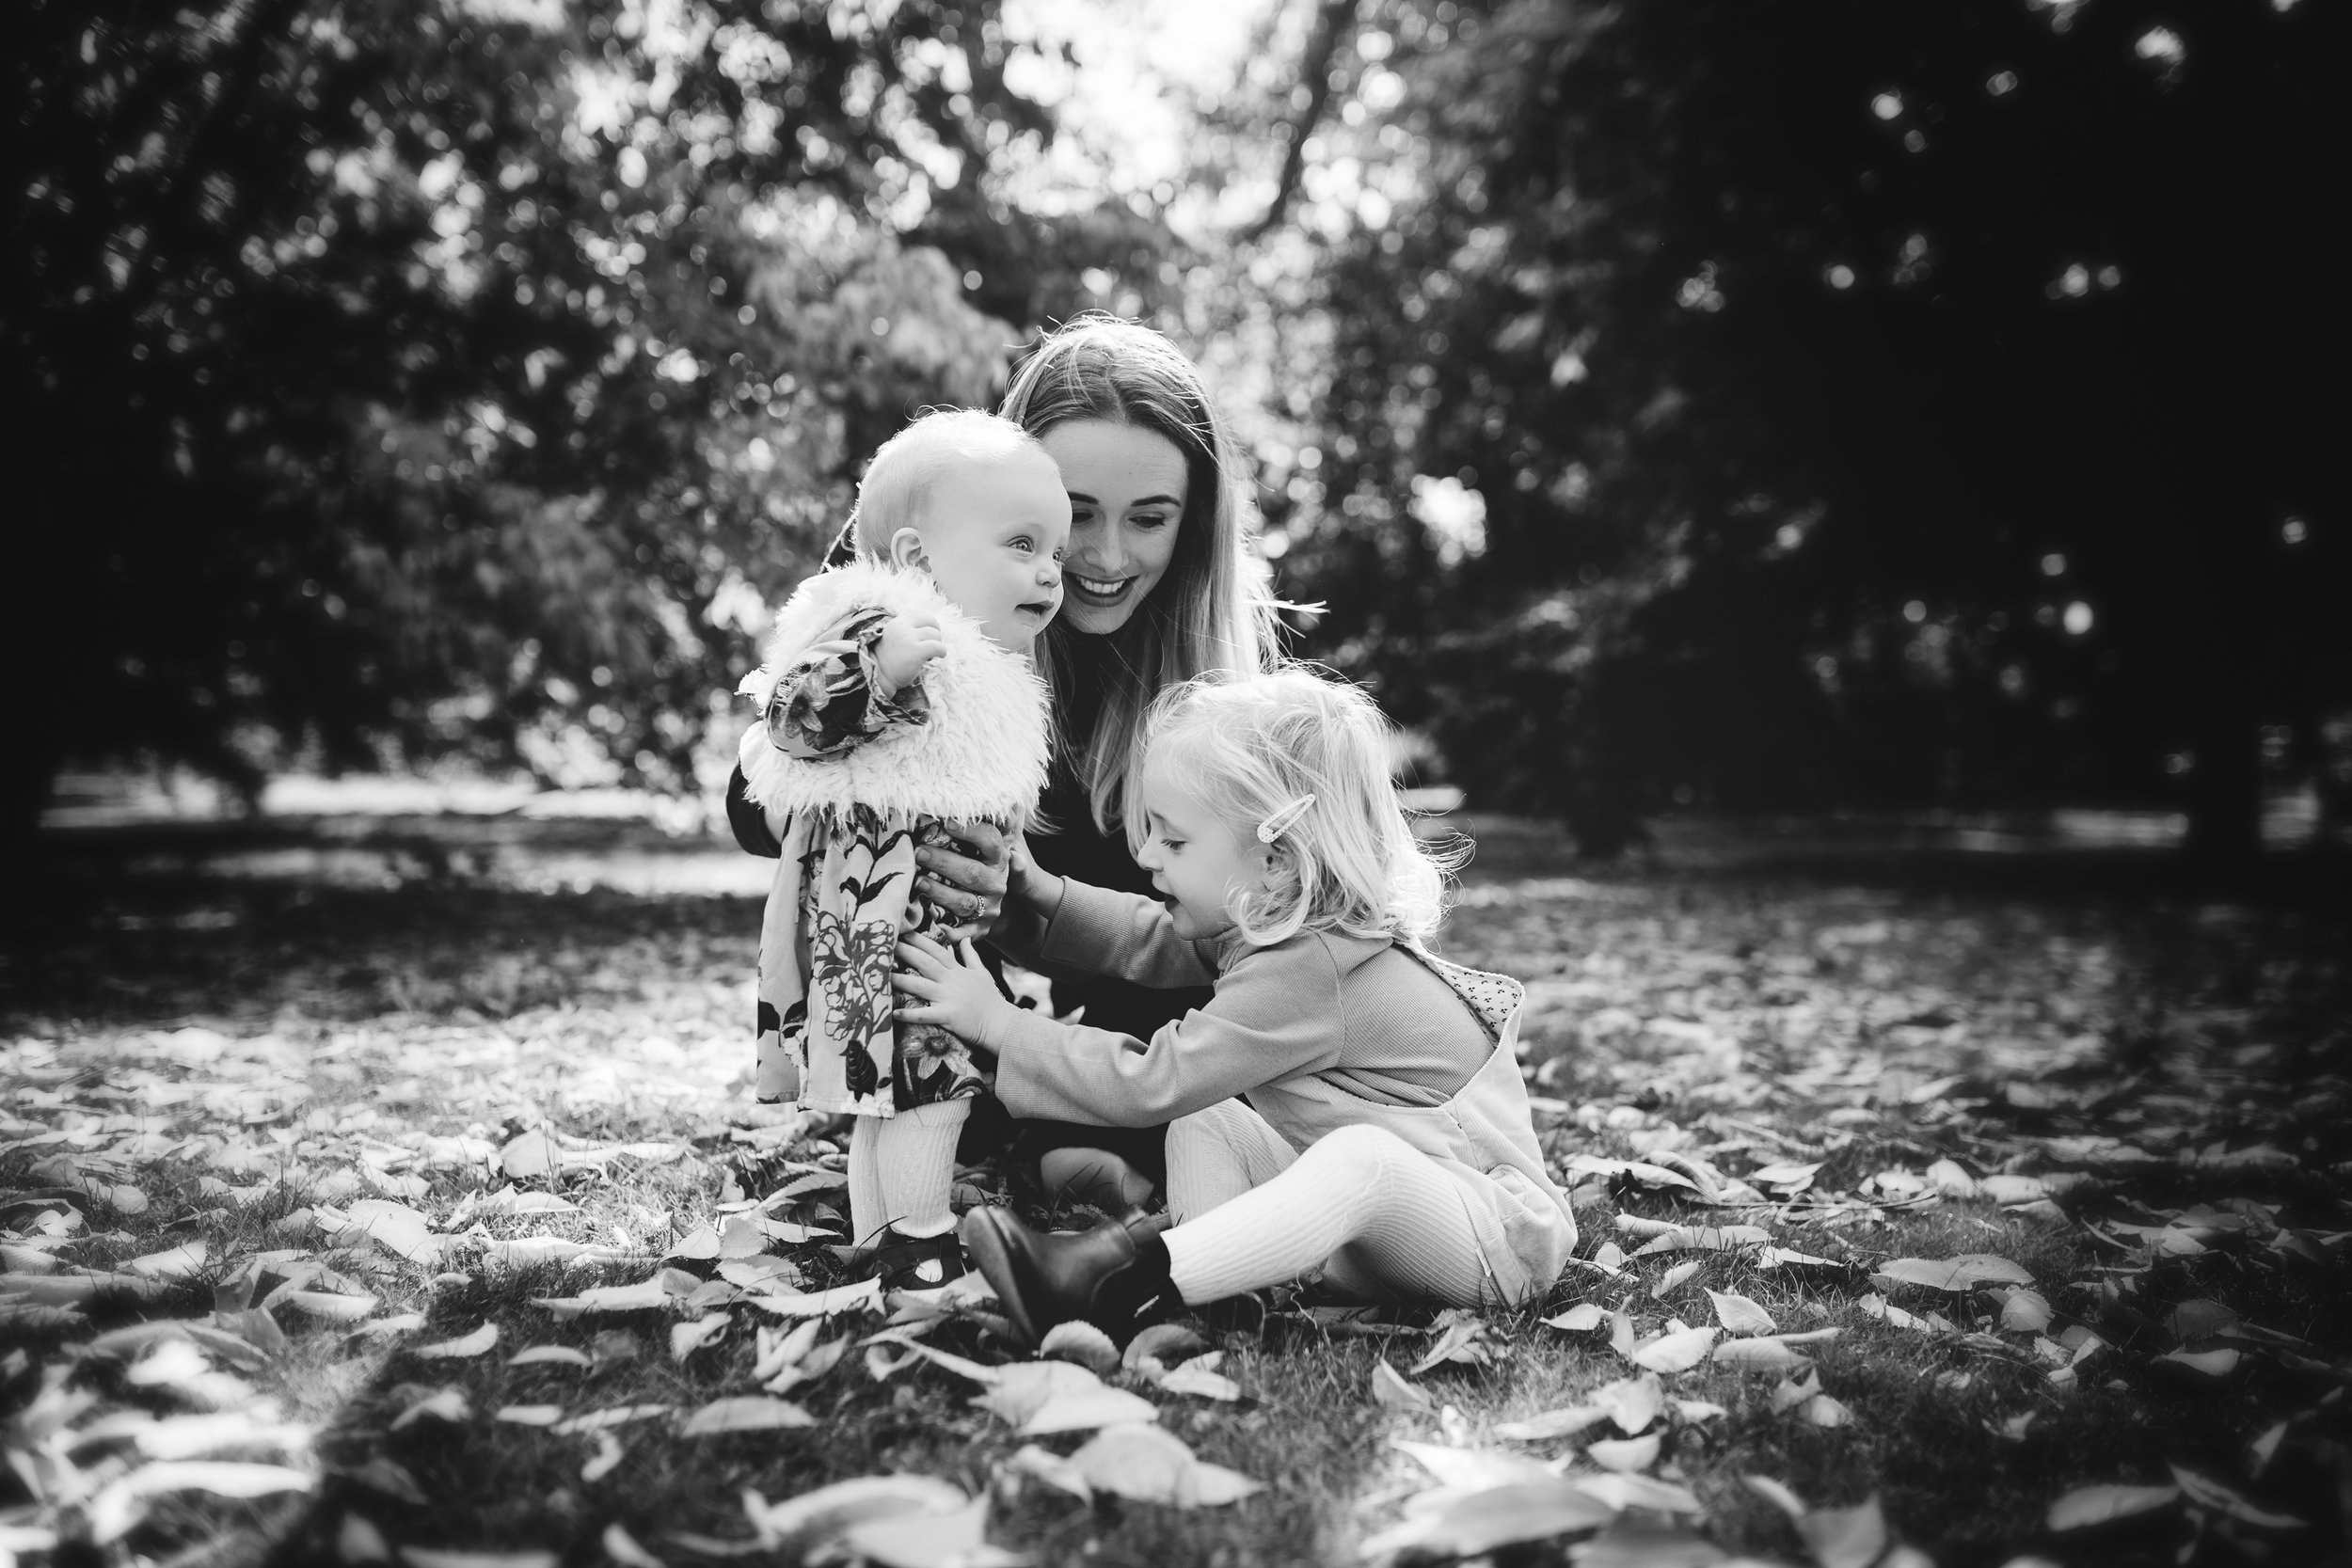 Outdoor Family Shoot on location in Woking Surrey, Copyrighted